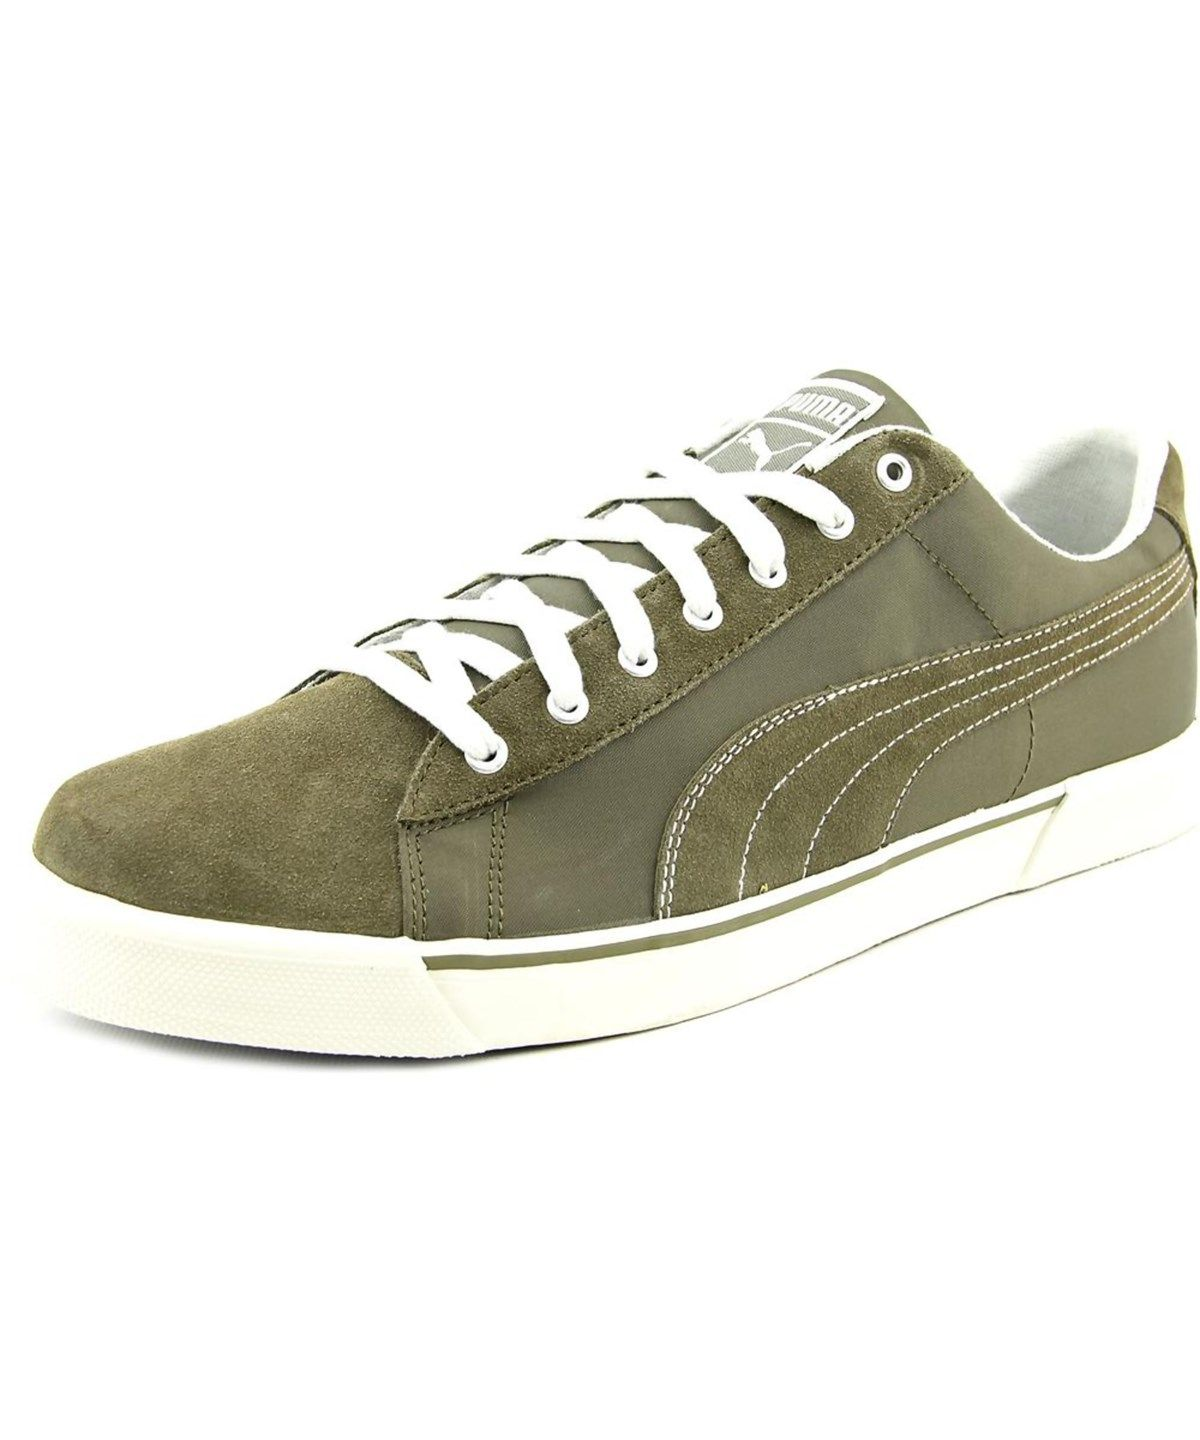 PUMA Puma Benny Breaker Men Round Toe Suede Green Sneakers .  puma  shoes   sneakers 3c6a1ee862a6